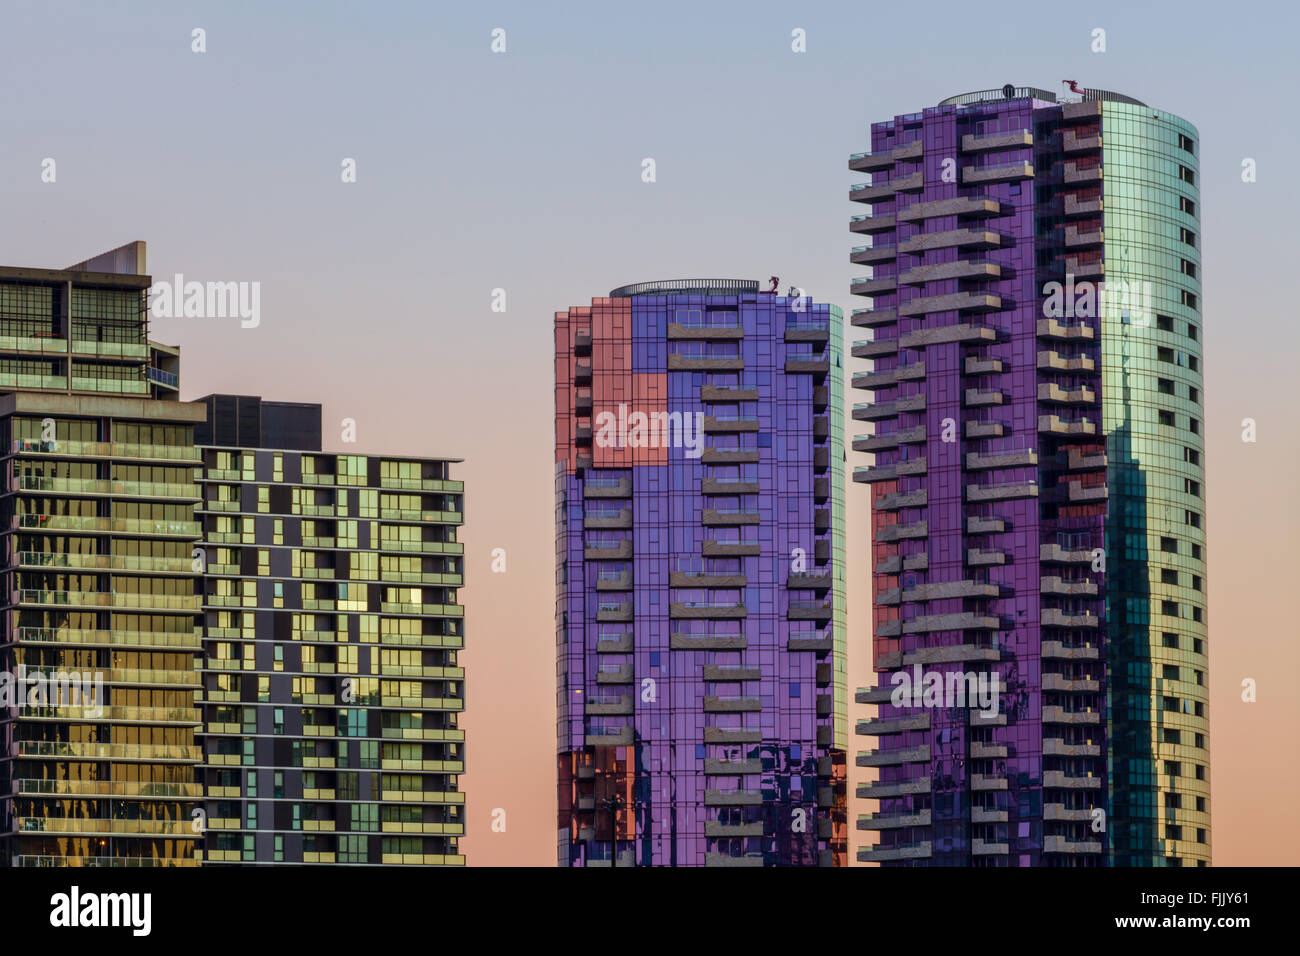 Closeup of residetial high rise buildings in Docklands, Melbourne at dawn - Stock Image